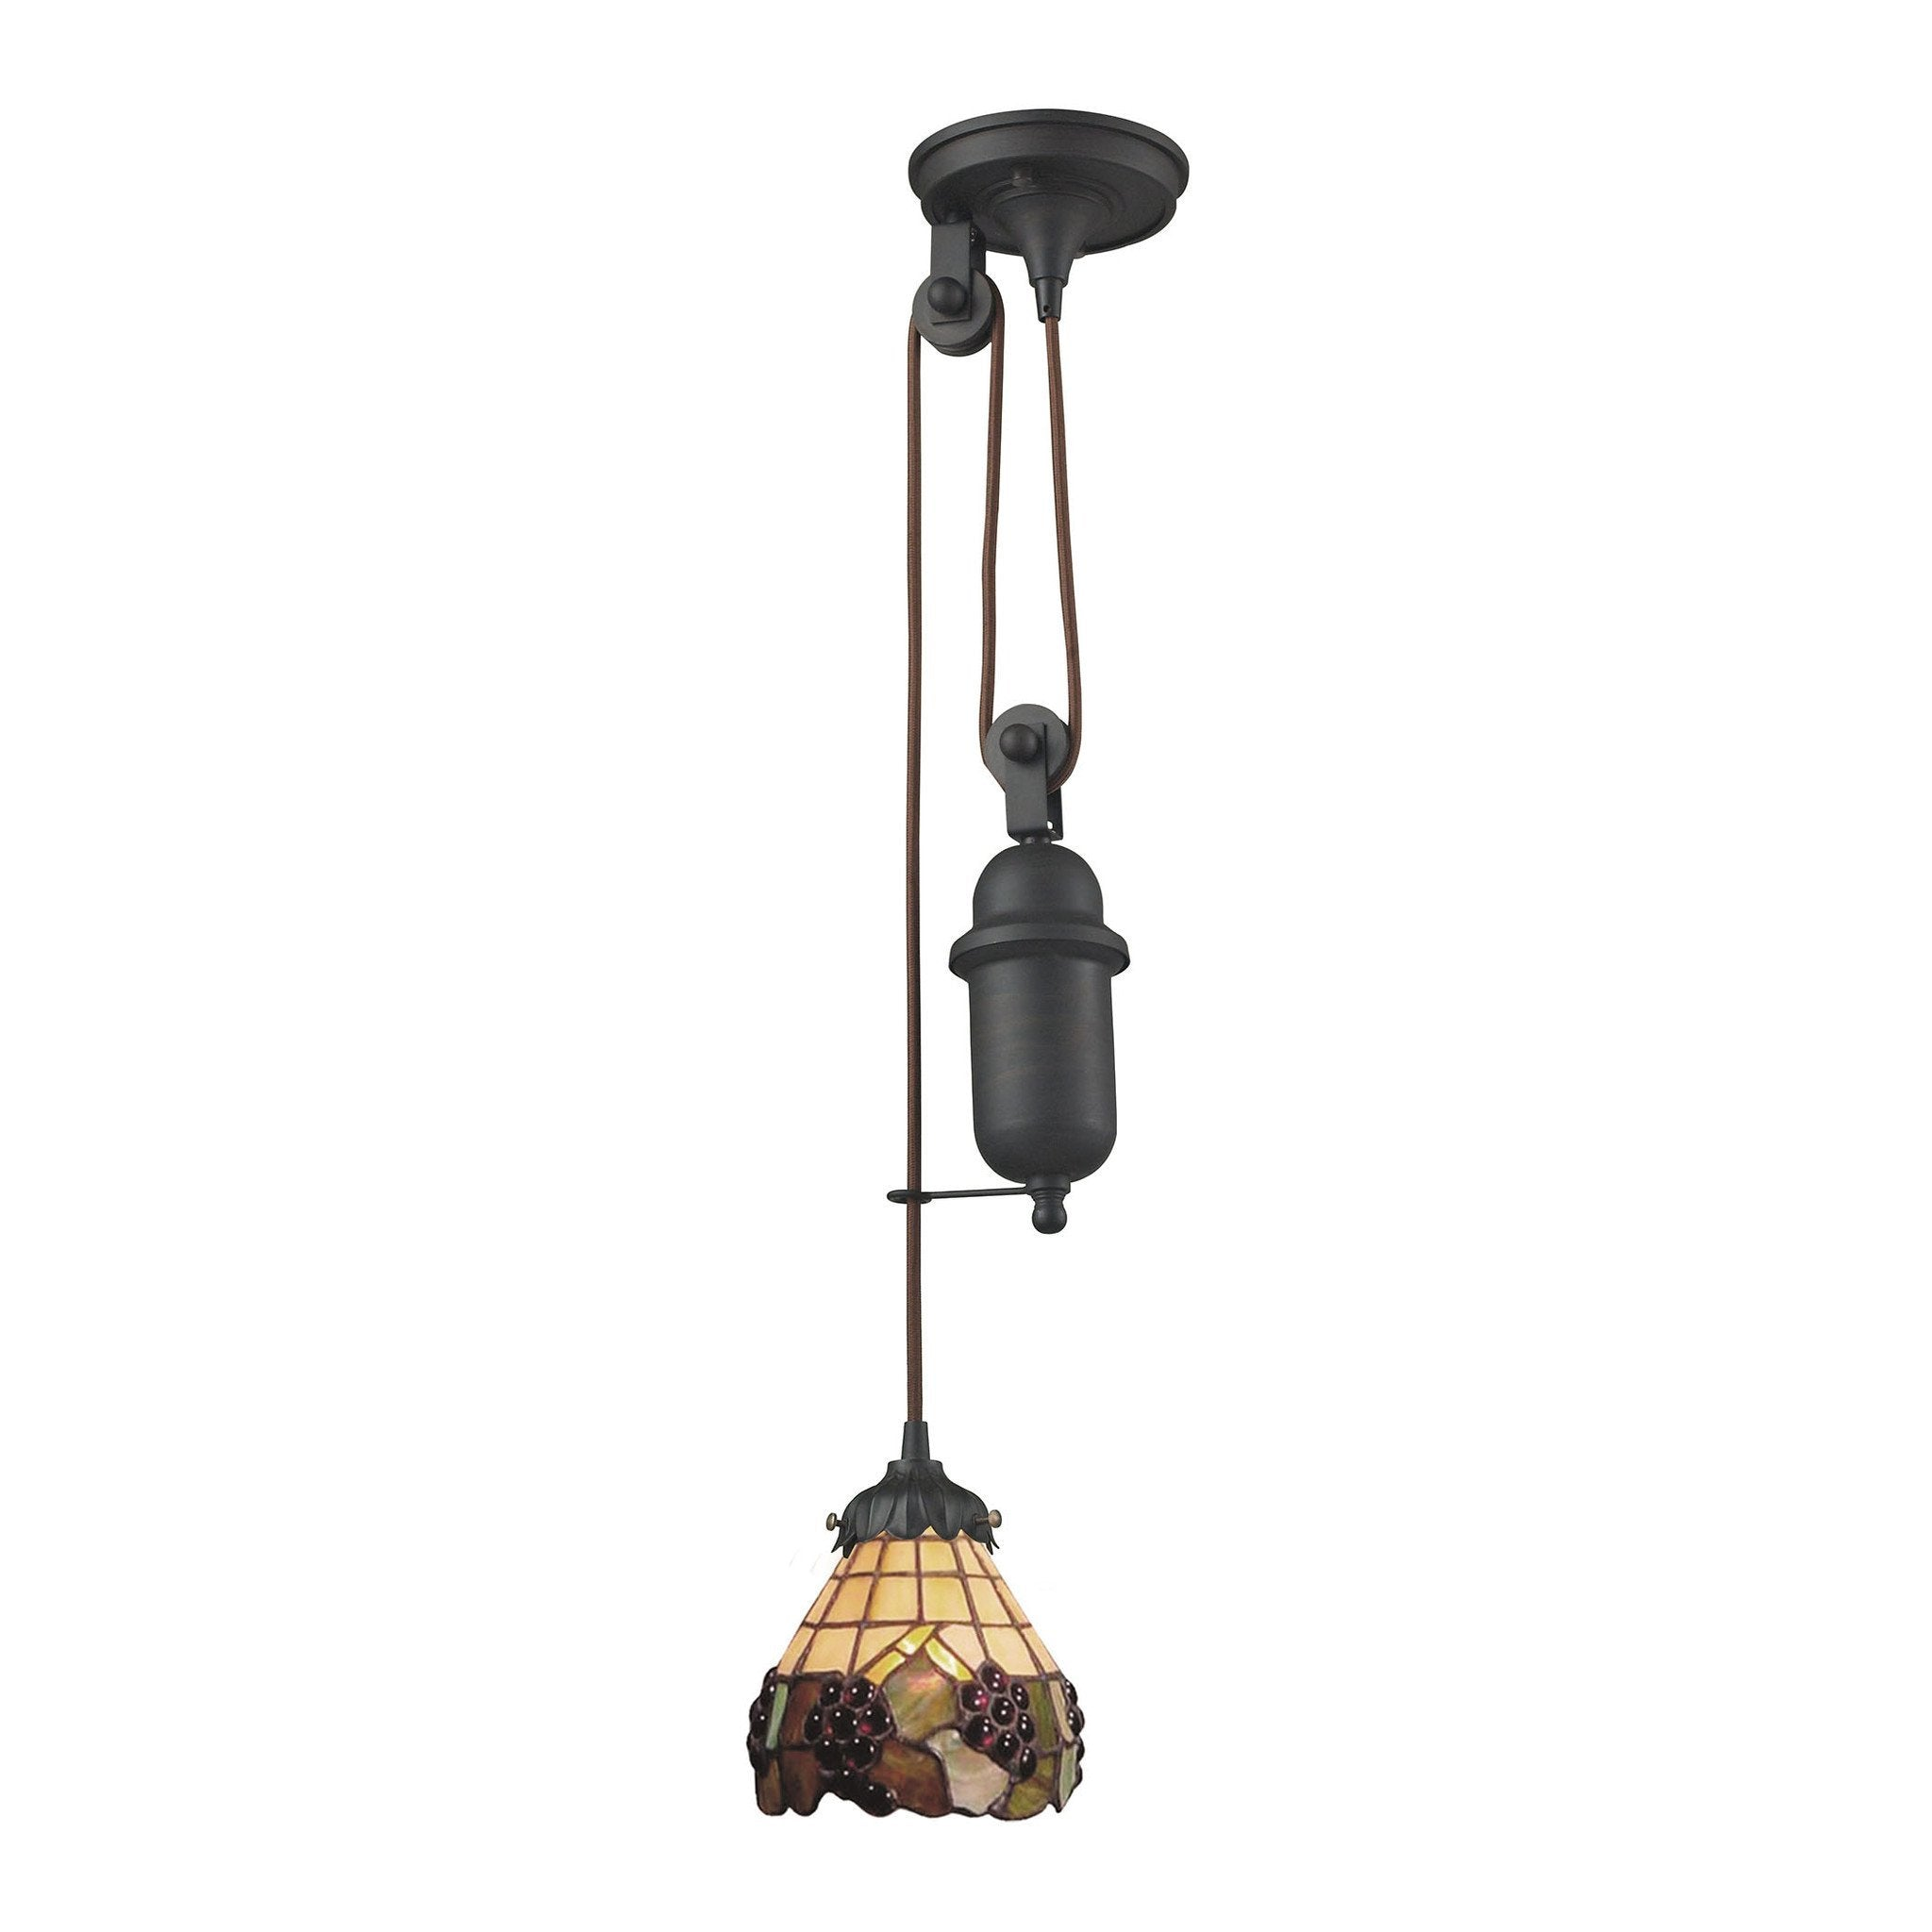 ELK Lighting 081-TB-07 Mix-N-Match Collection Tiffany Bronze Finish